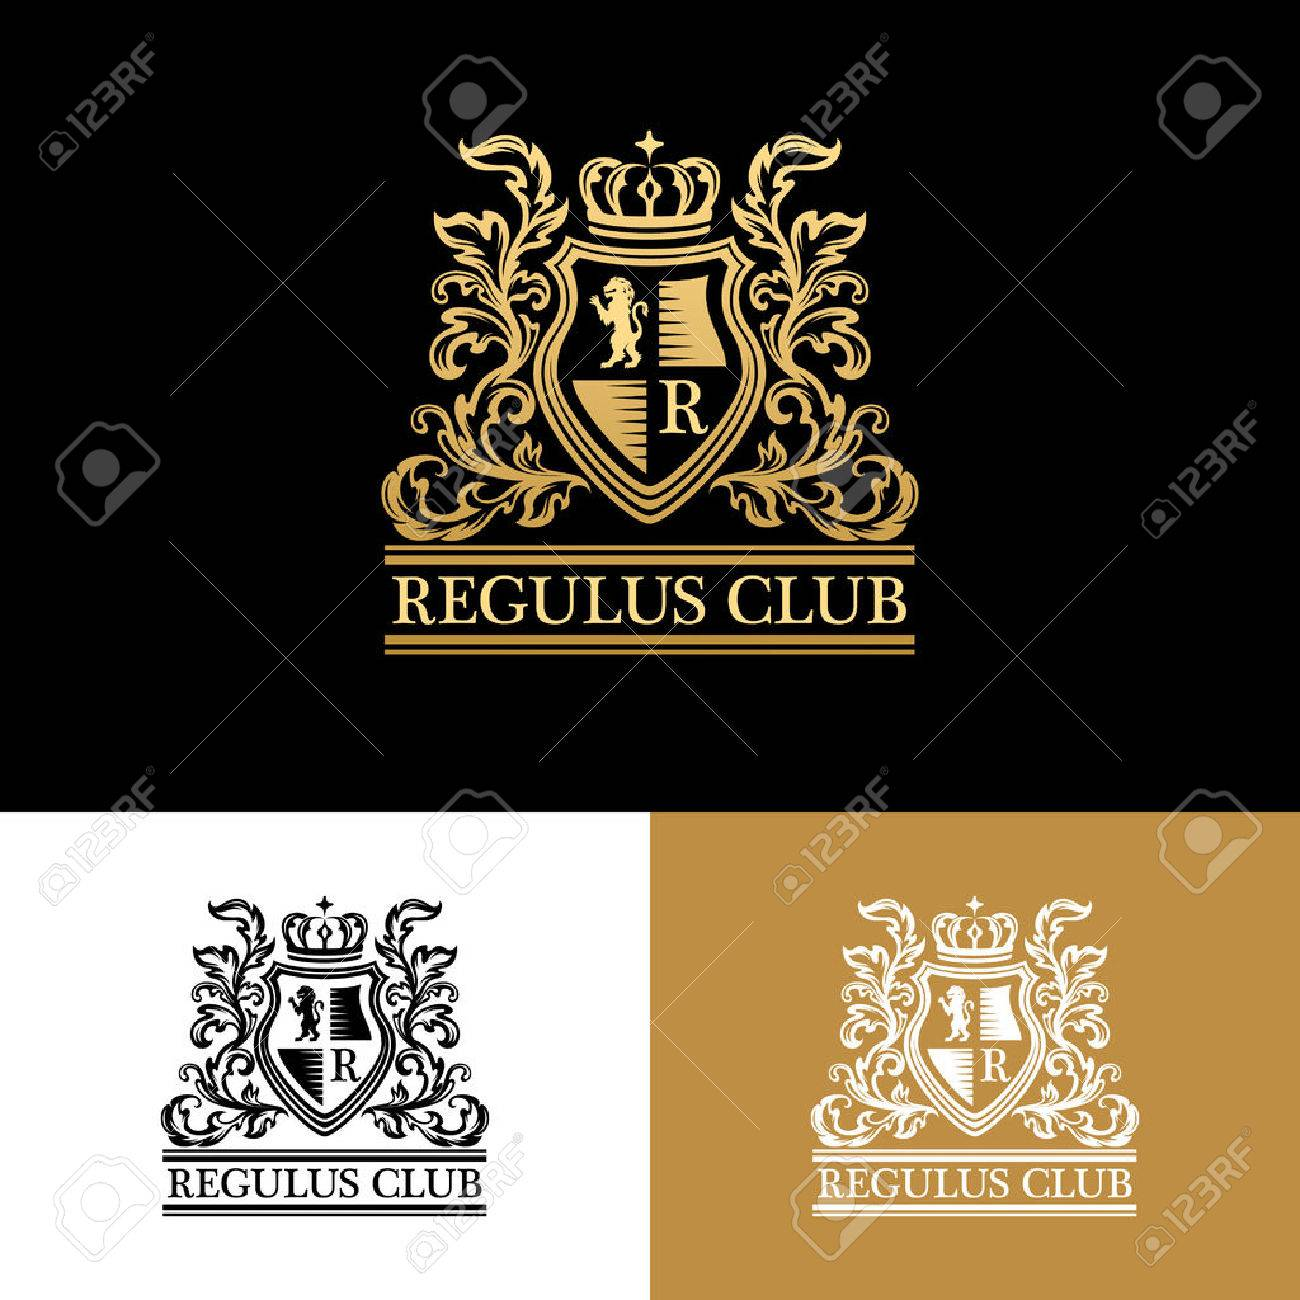 Heraldic Logo Template Vintage Ornamental Emblem With Lion